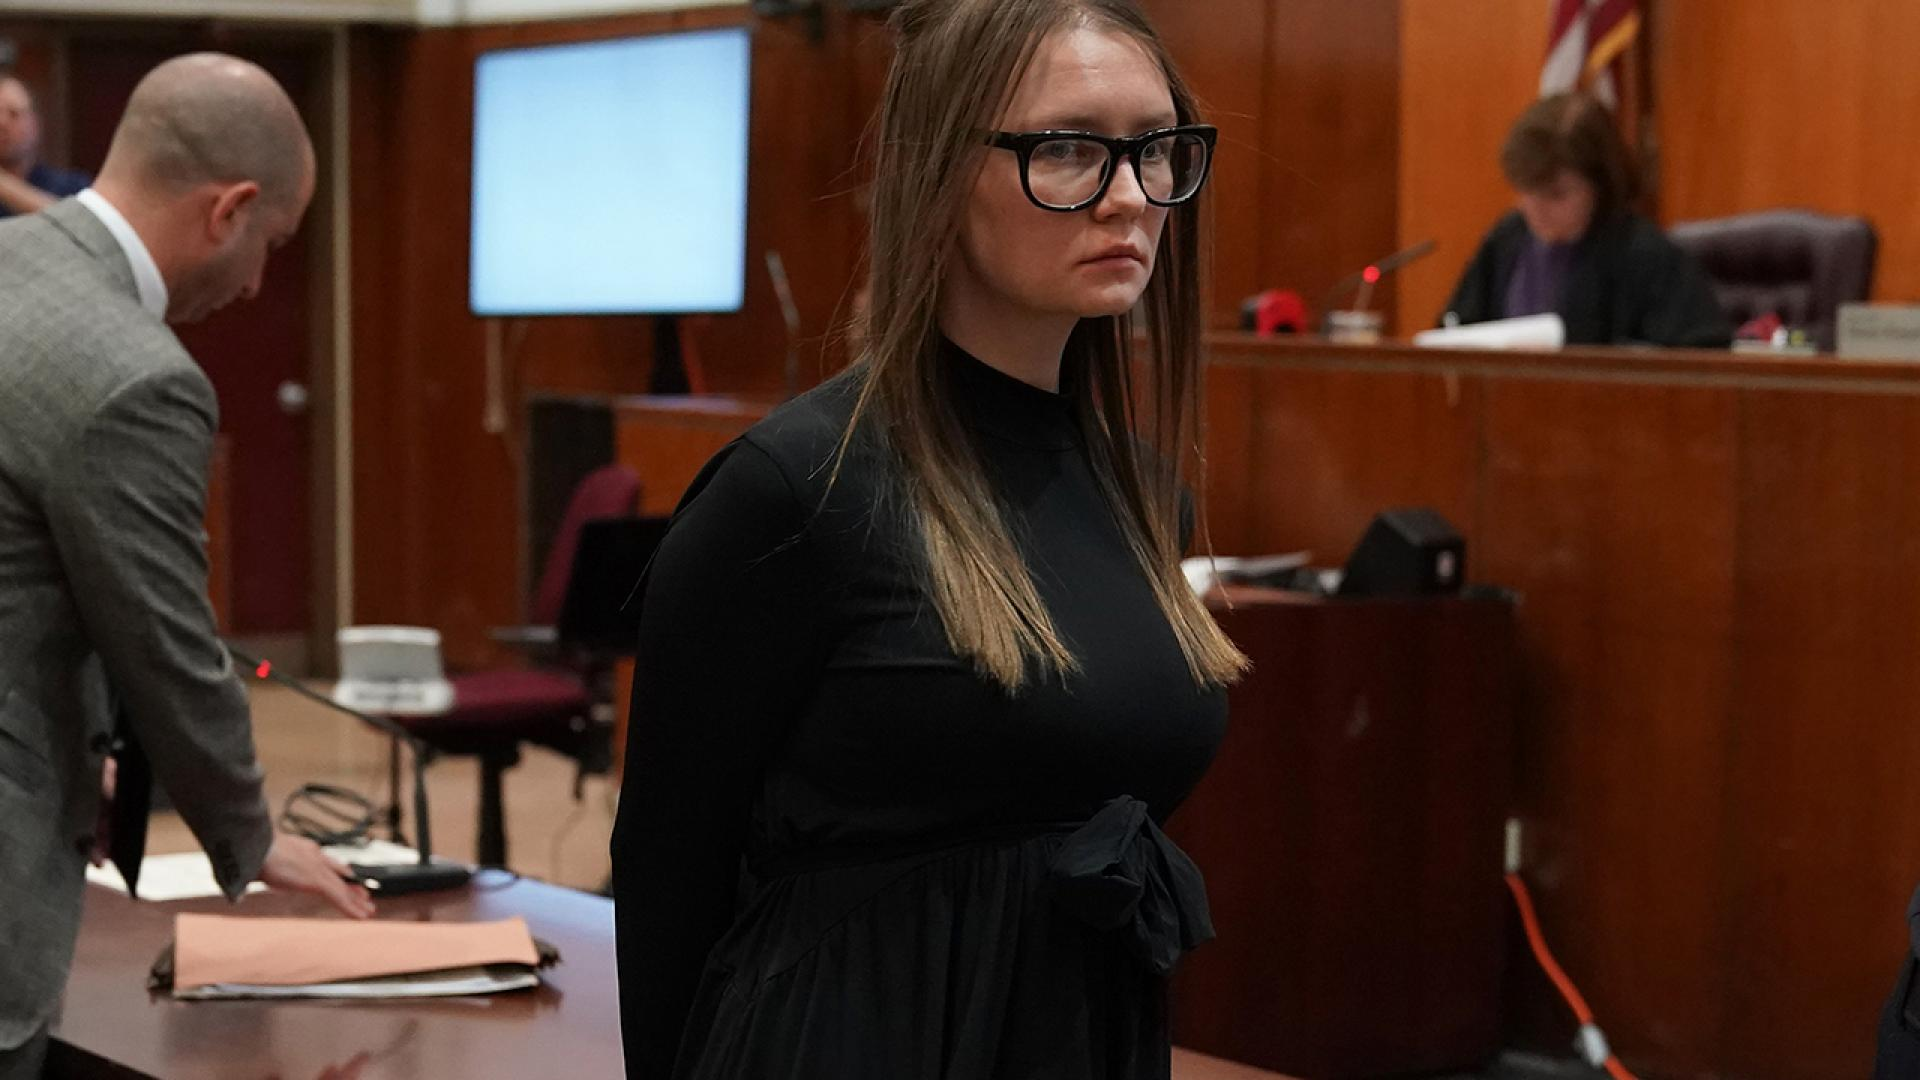 Anna Sorokin pretended to be a wealthy German heiress worth $60 million.